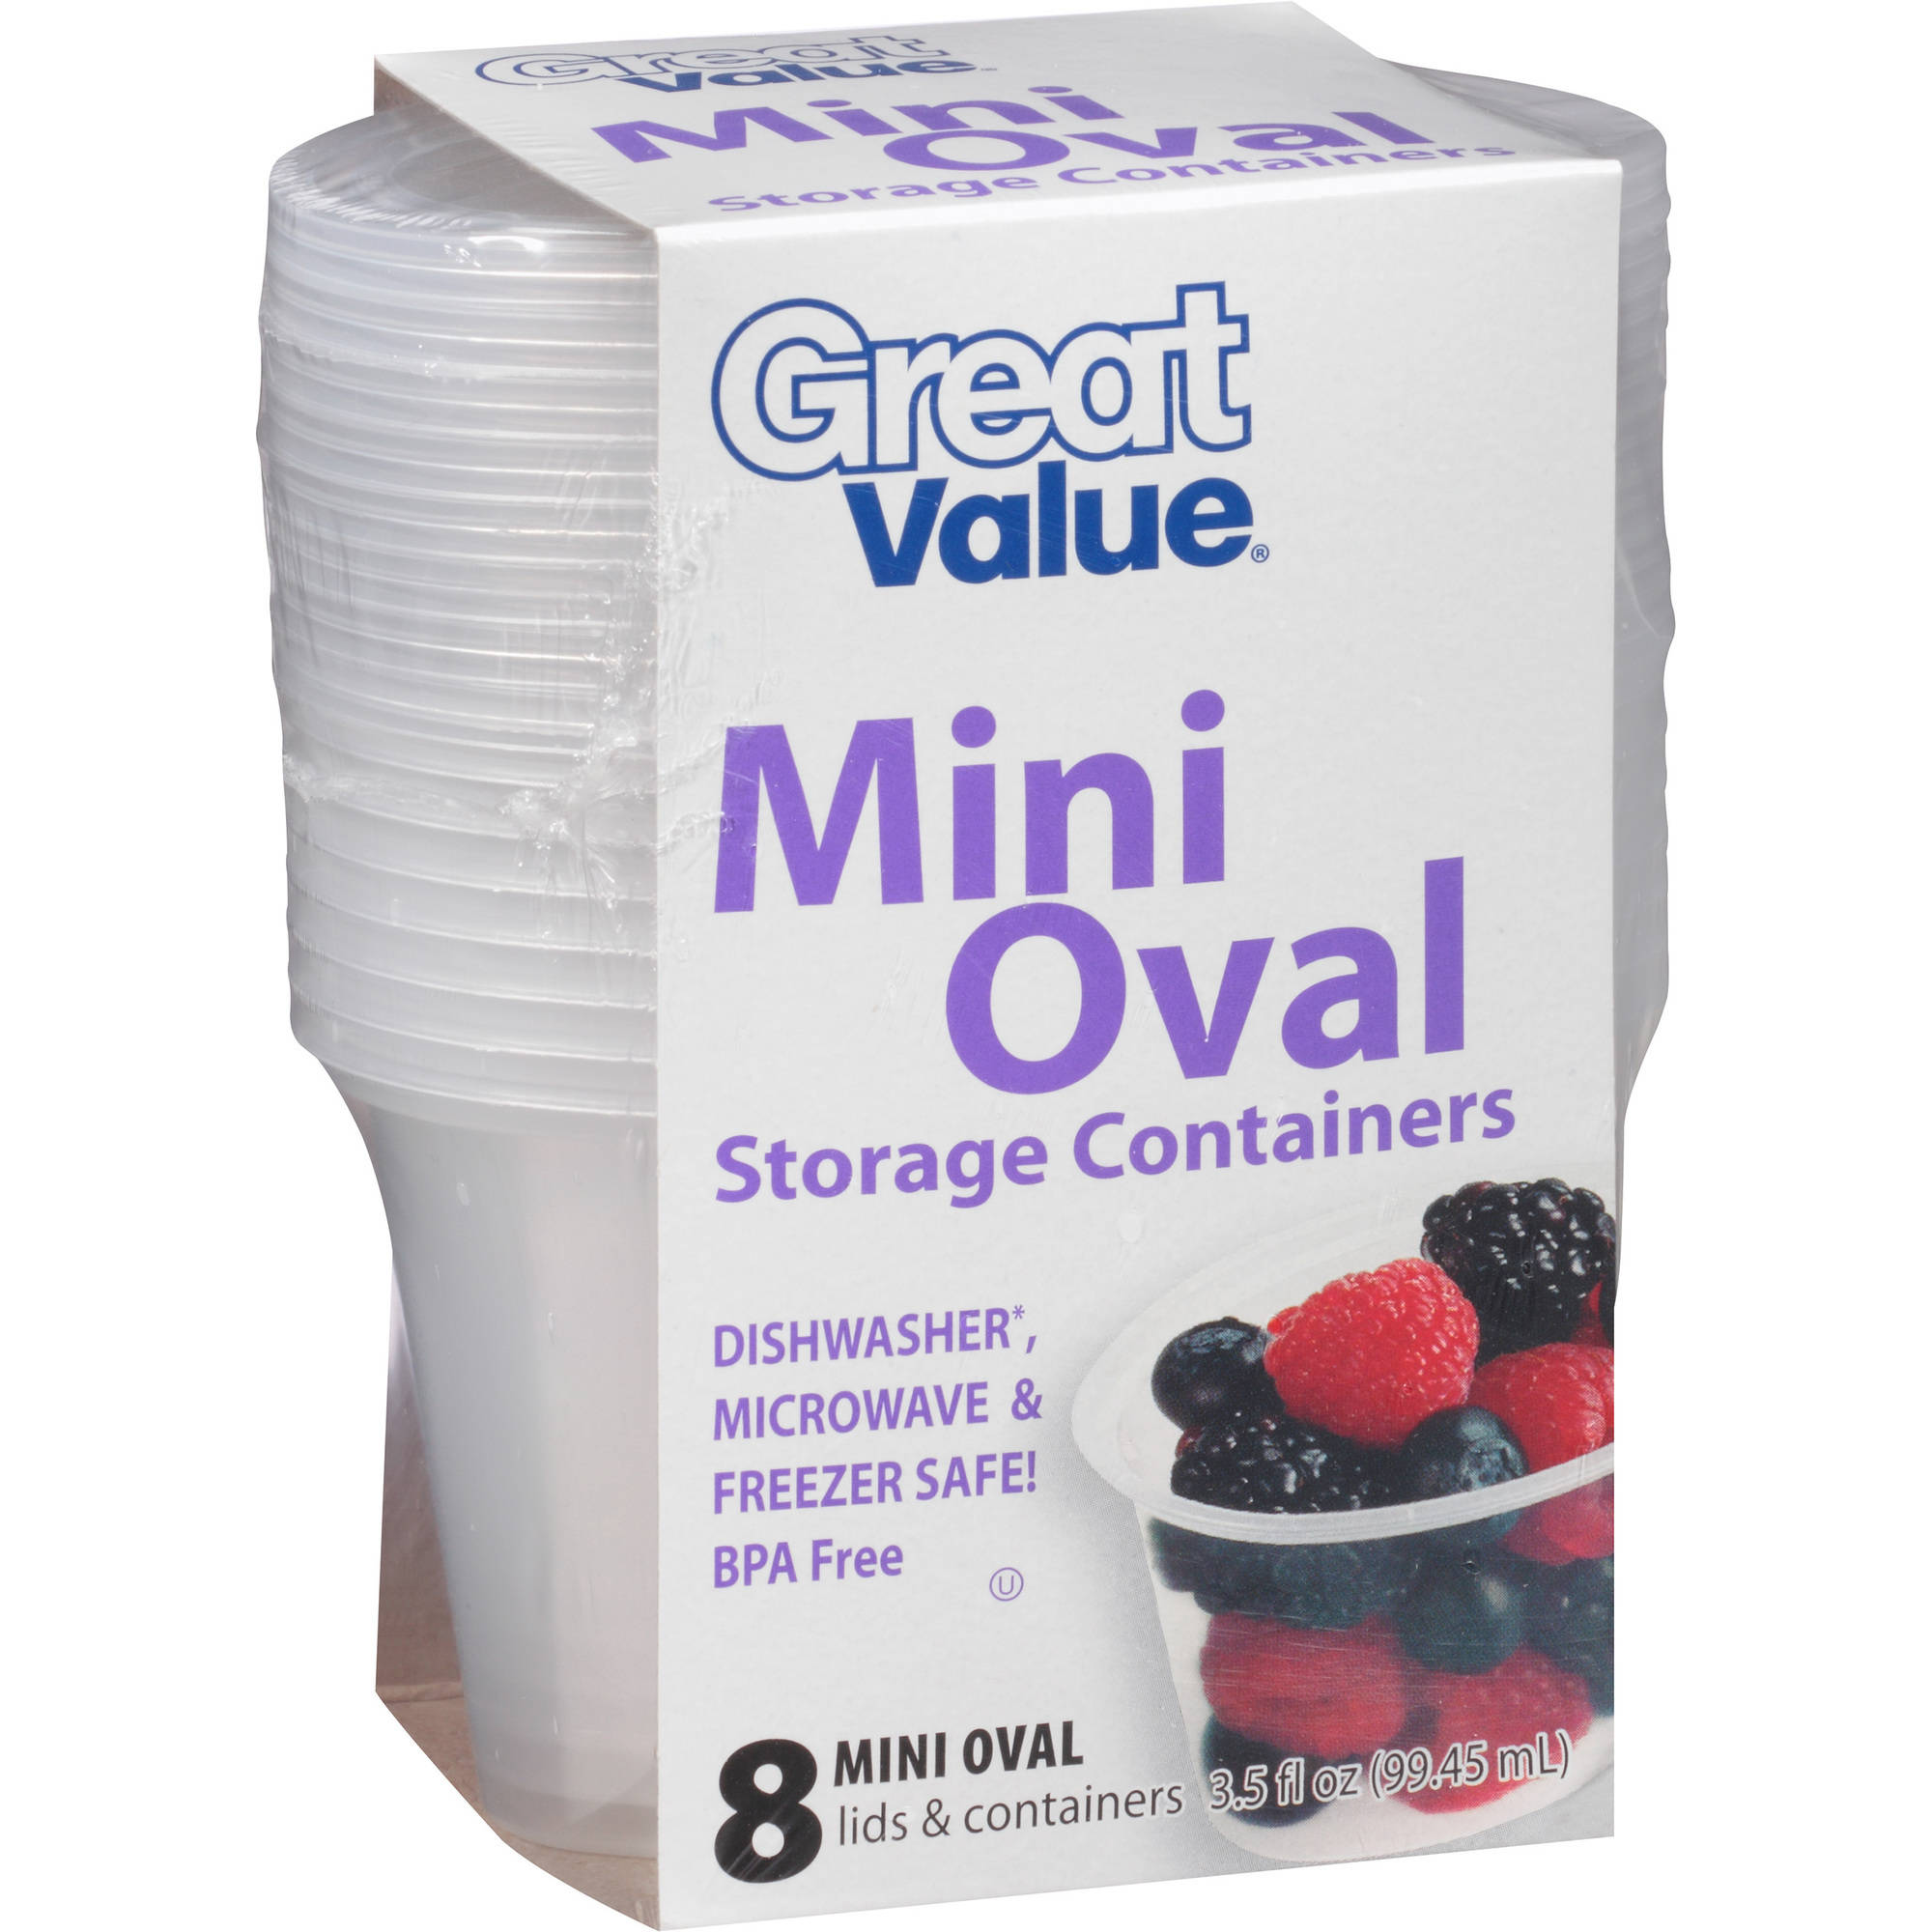 Great Value Mini Oval Storage Containers, 3.5 fl oz, 8 count